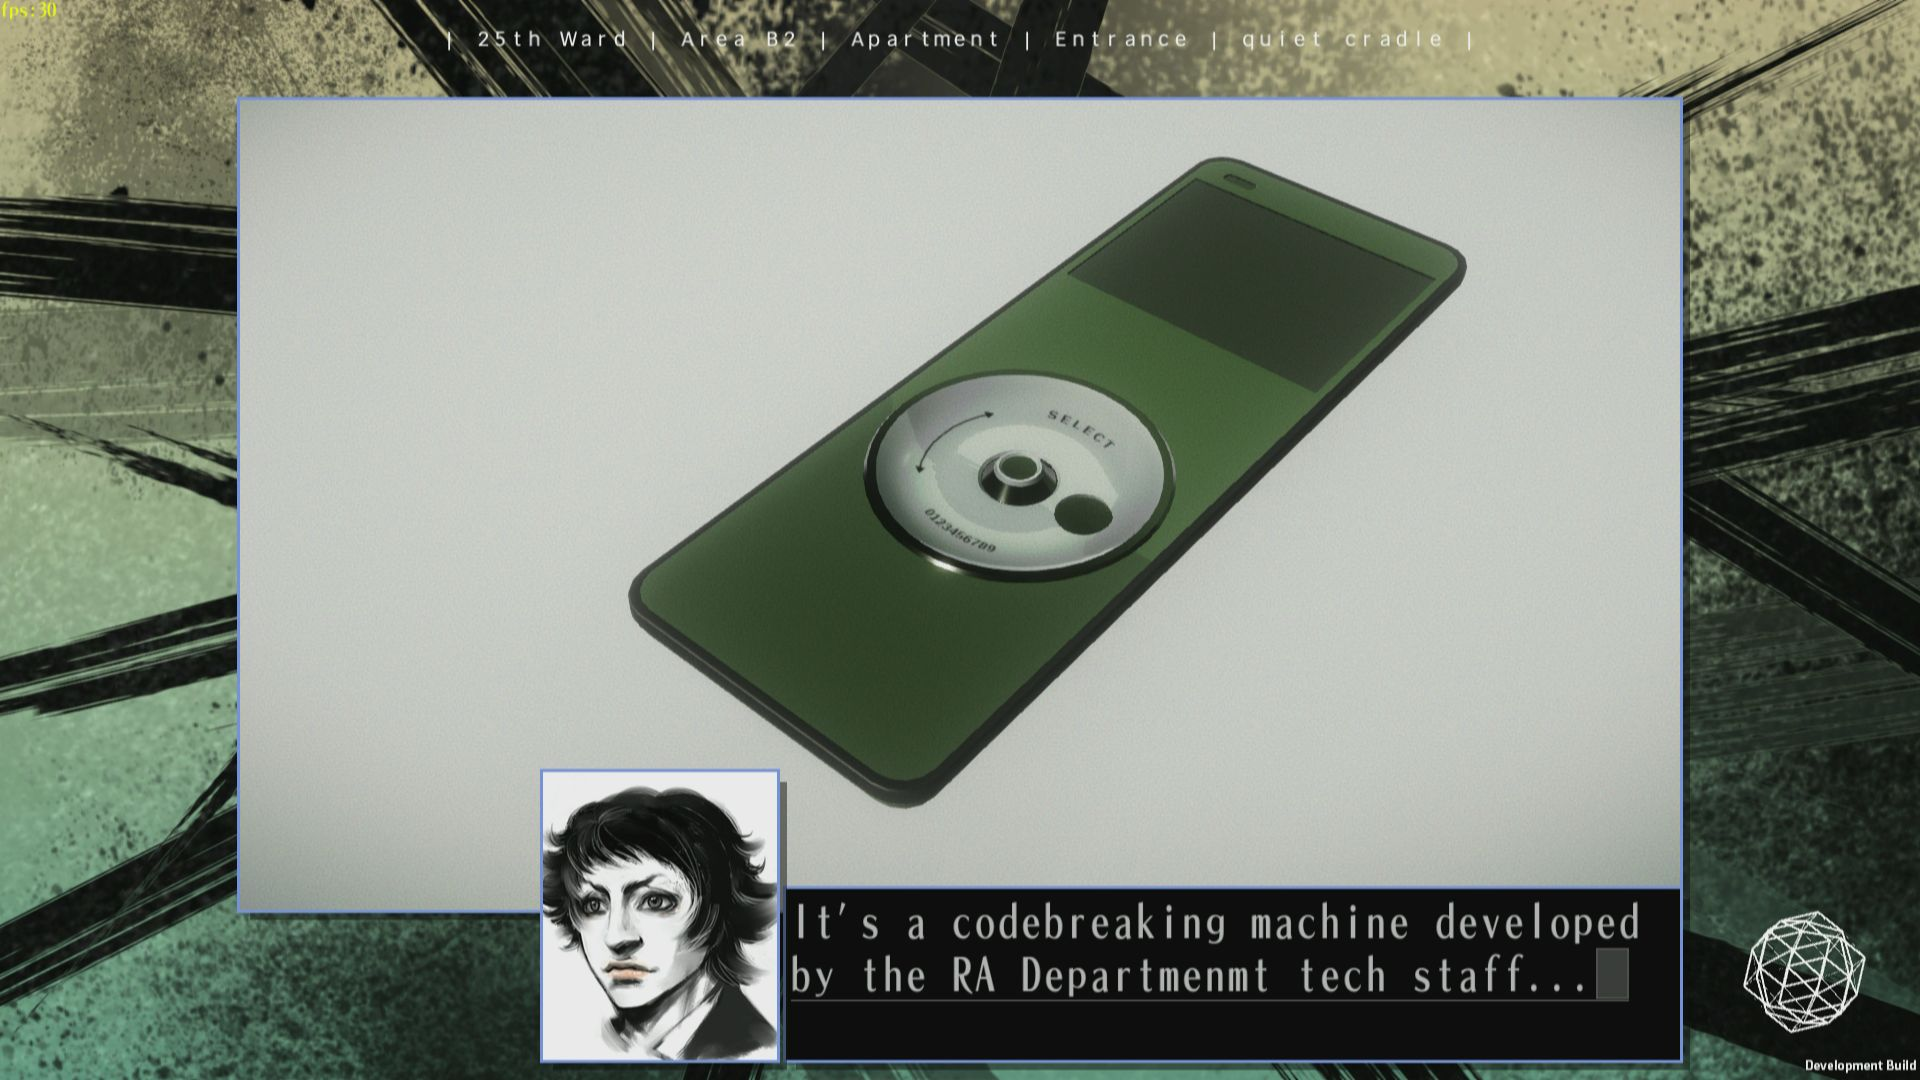 The 25th Ward The Silver Case Screen 11